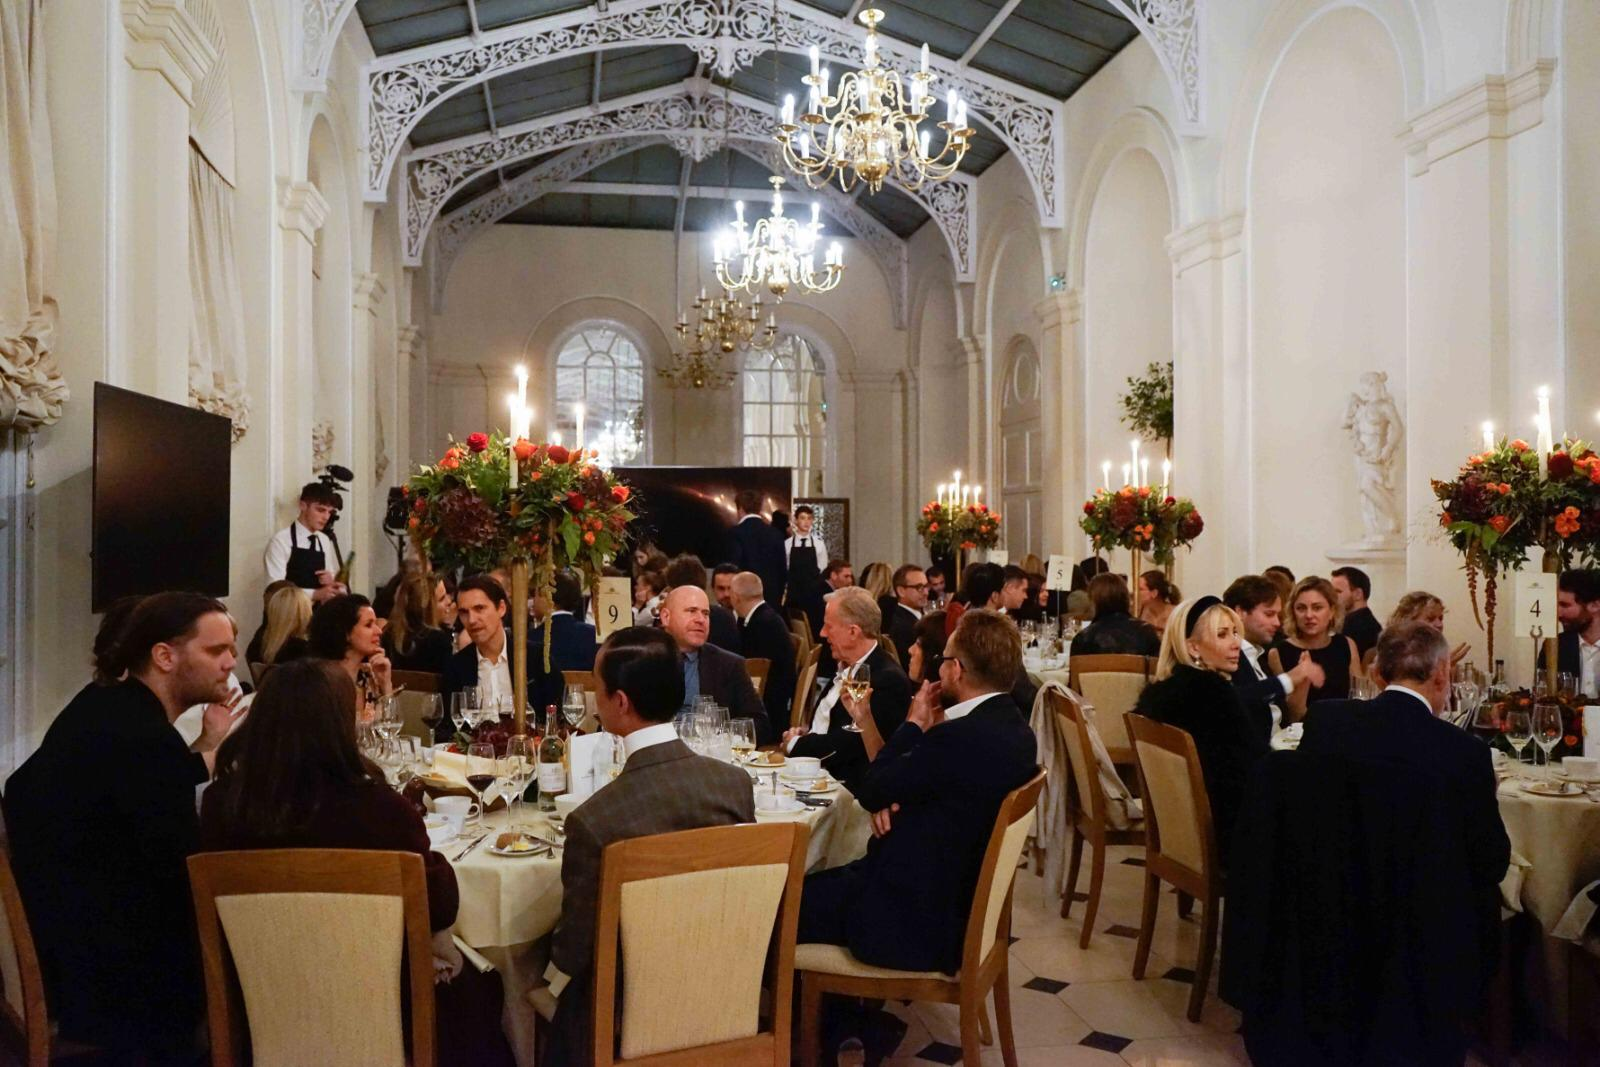 Therme Art celebrations at The Orangery in Blenheim Palace